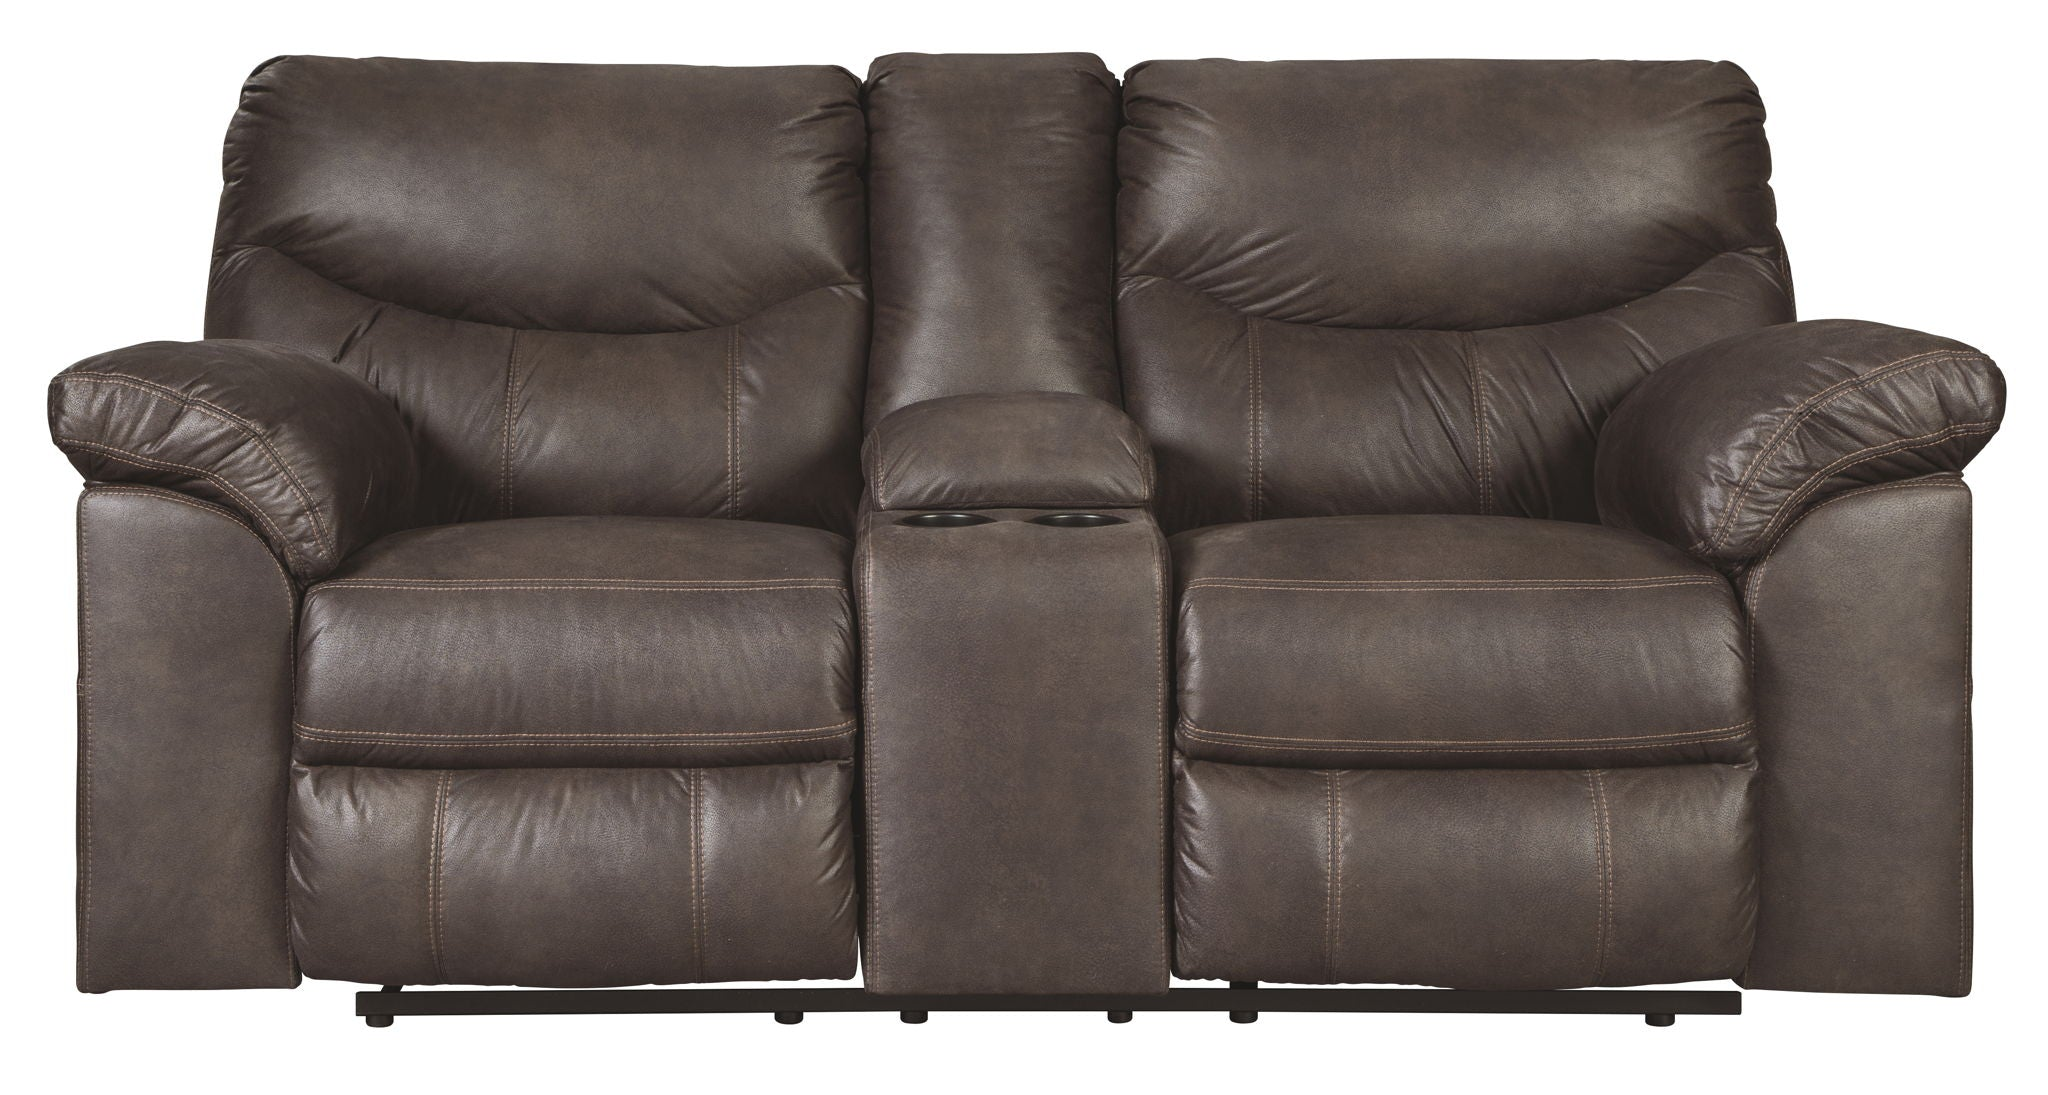 Boxberg Reclining Loveseat with Console | Calgary's Furniture Store